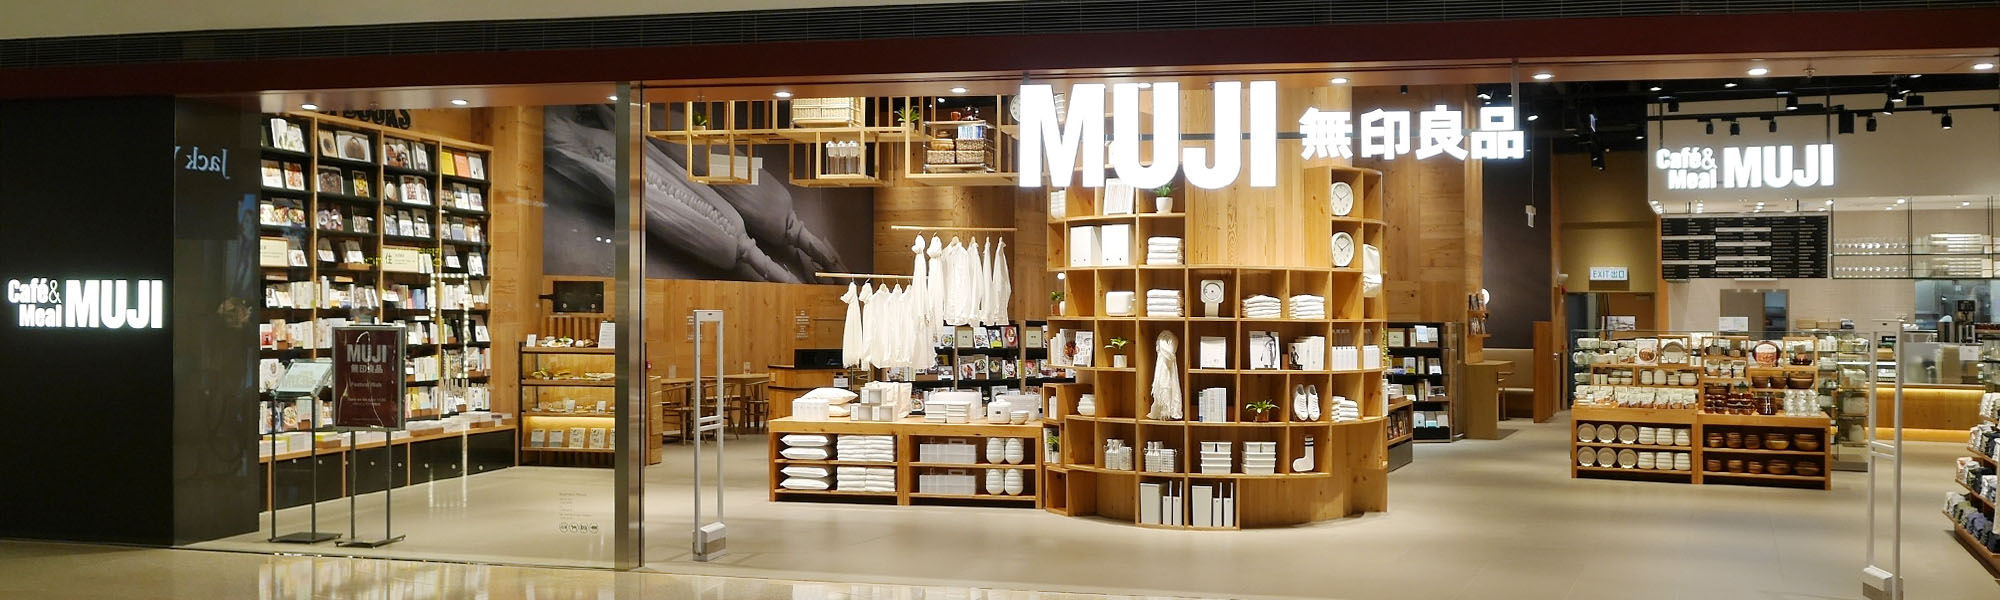 muji 4 4 jetso club. Black Bedroom Furniture Sets. Home Design Ideas